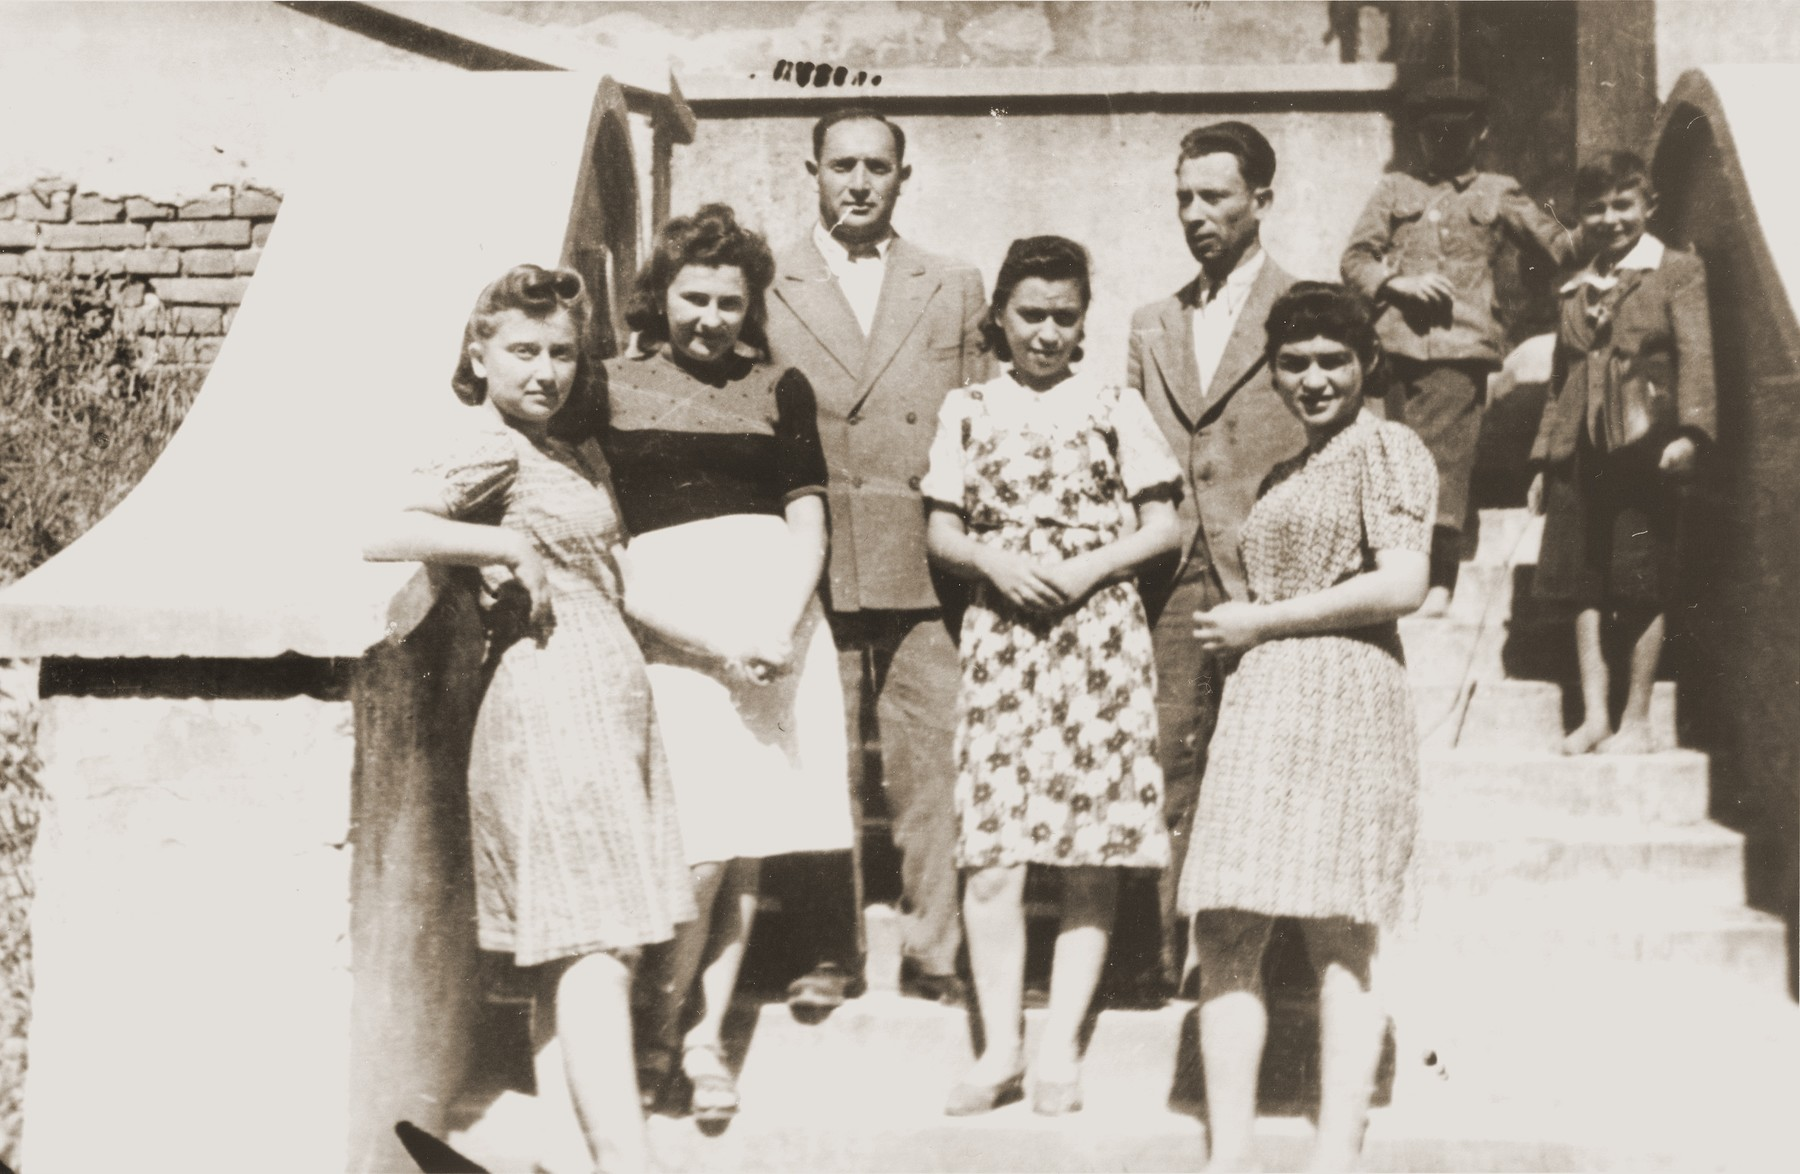 Group portrait of young Jewish DPs on the steps of a building in Lublin.  Pictured from left to right are: Rosa Lerner (Friedrich), Fryda Israelovitz (Bukar), unknown, Ms. Metches, Munio Kaczer (Kaiser), and Eugenia (Hochberg) Lanceter.